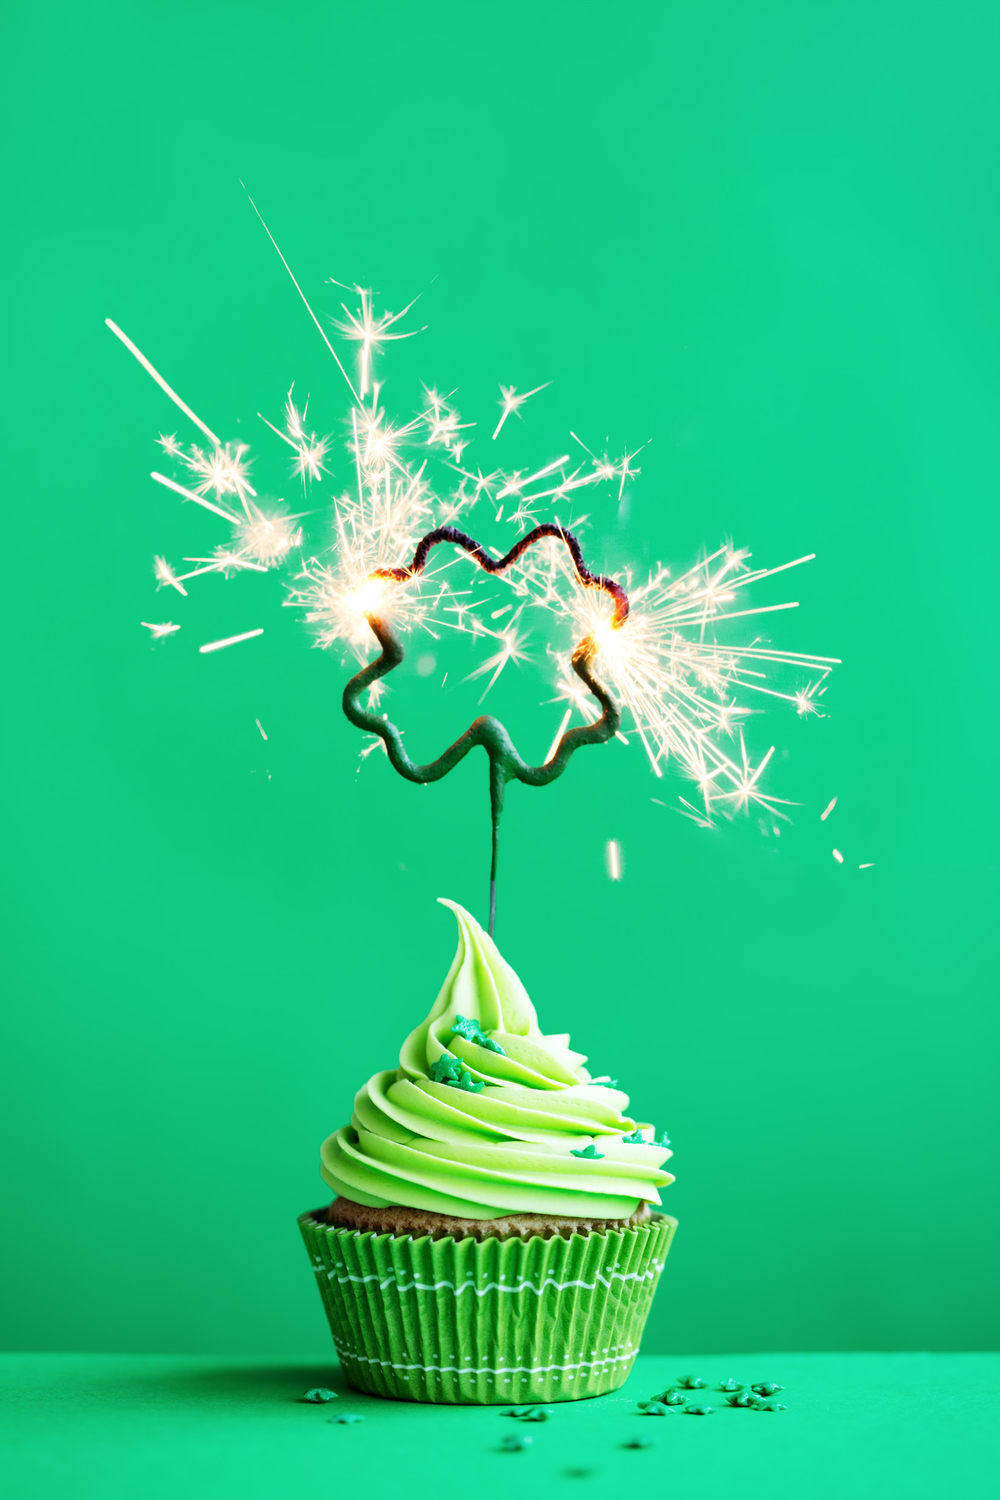 A cupcake with green icing and a sparkler in the shape of a shamrock to wish everyone a happy St. Patrick's Day.